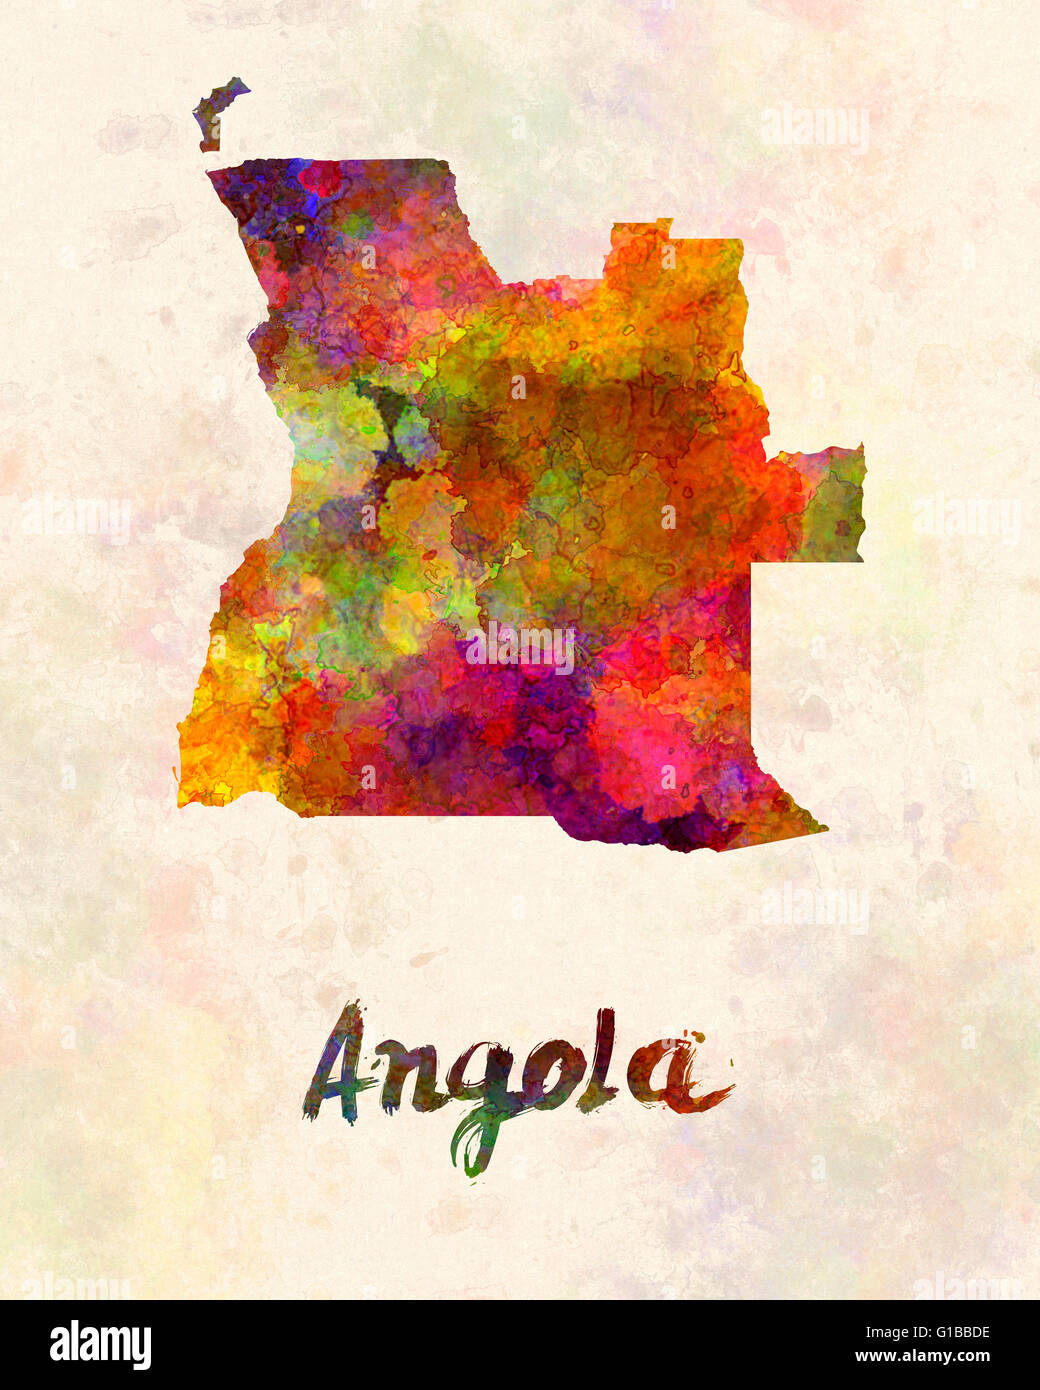 Angola in watercolor - Stock Image